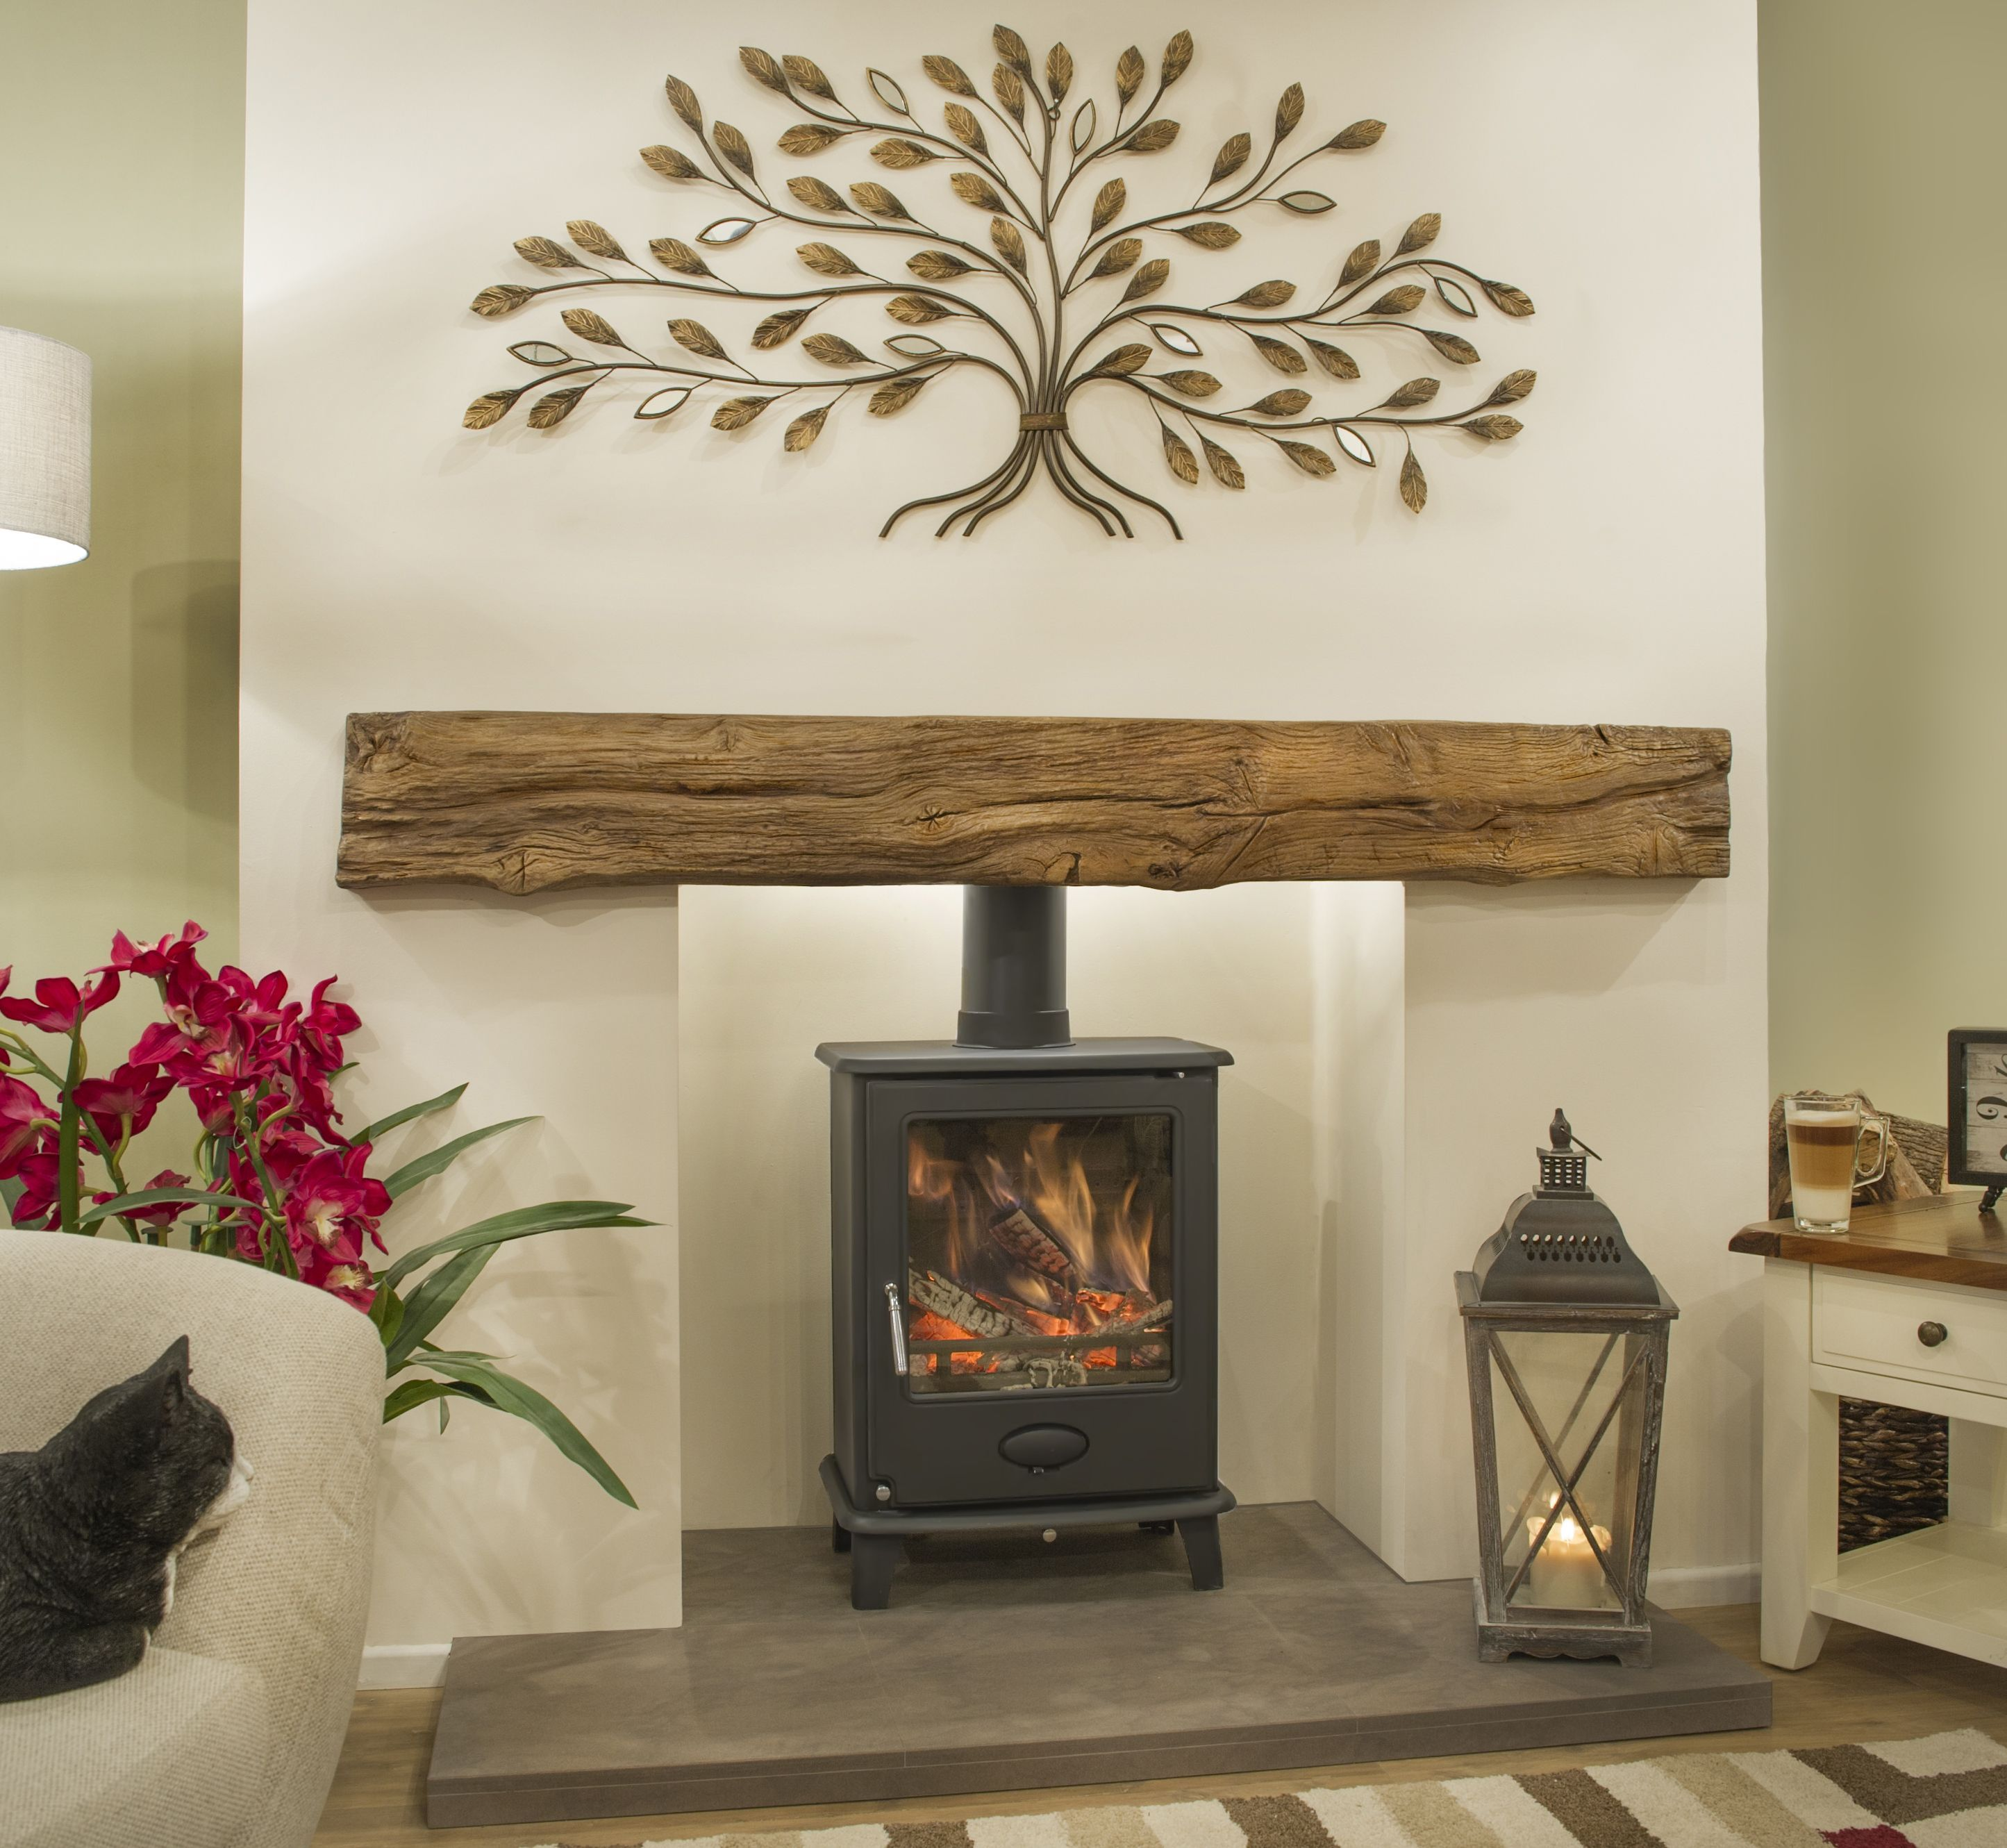 Image Result For Wood Burning Stove Victorian Living Roo